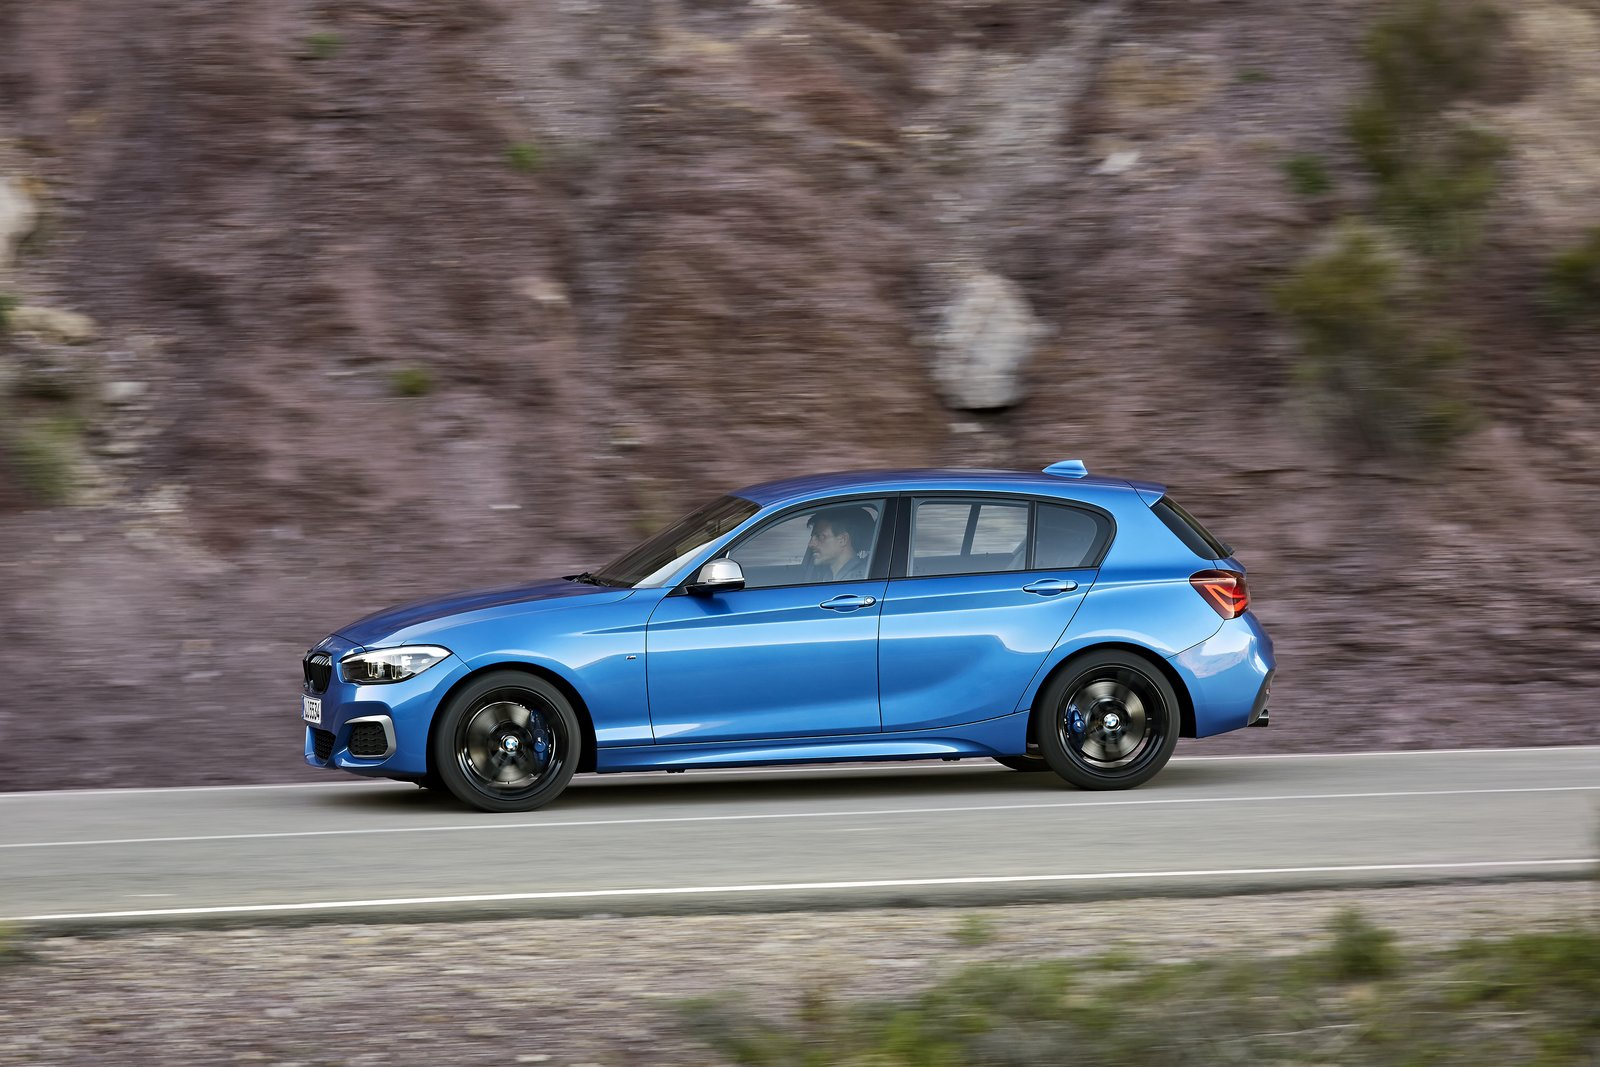 2018 bmw 1 series hatchback.  2018 blocking ads can be devastating to sites you love and result in people  losing their jobs negatively affect the quality of content intended 2018 bmw 1 series hatchback s